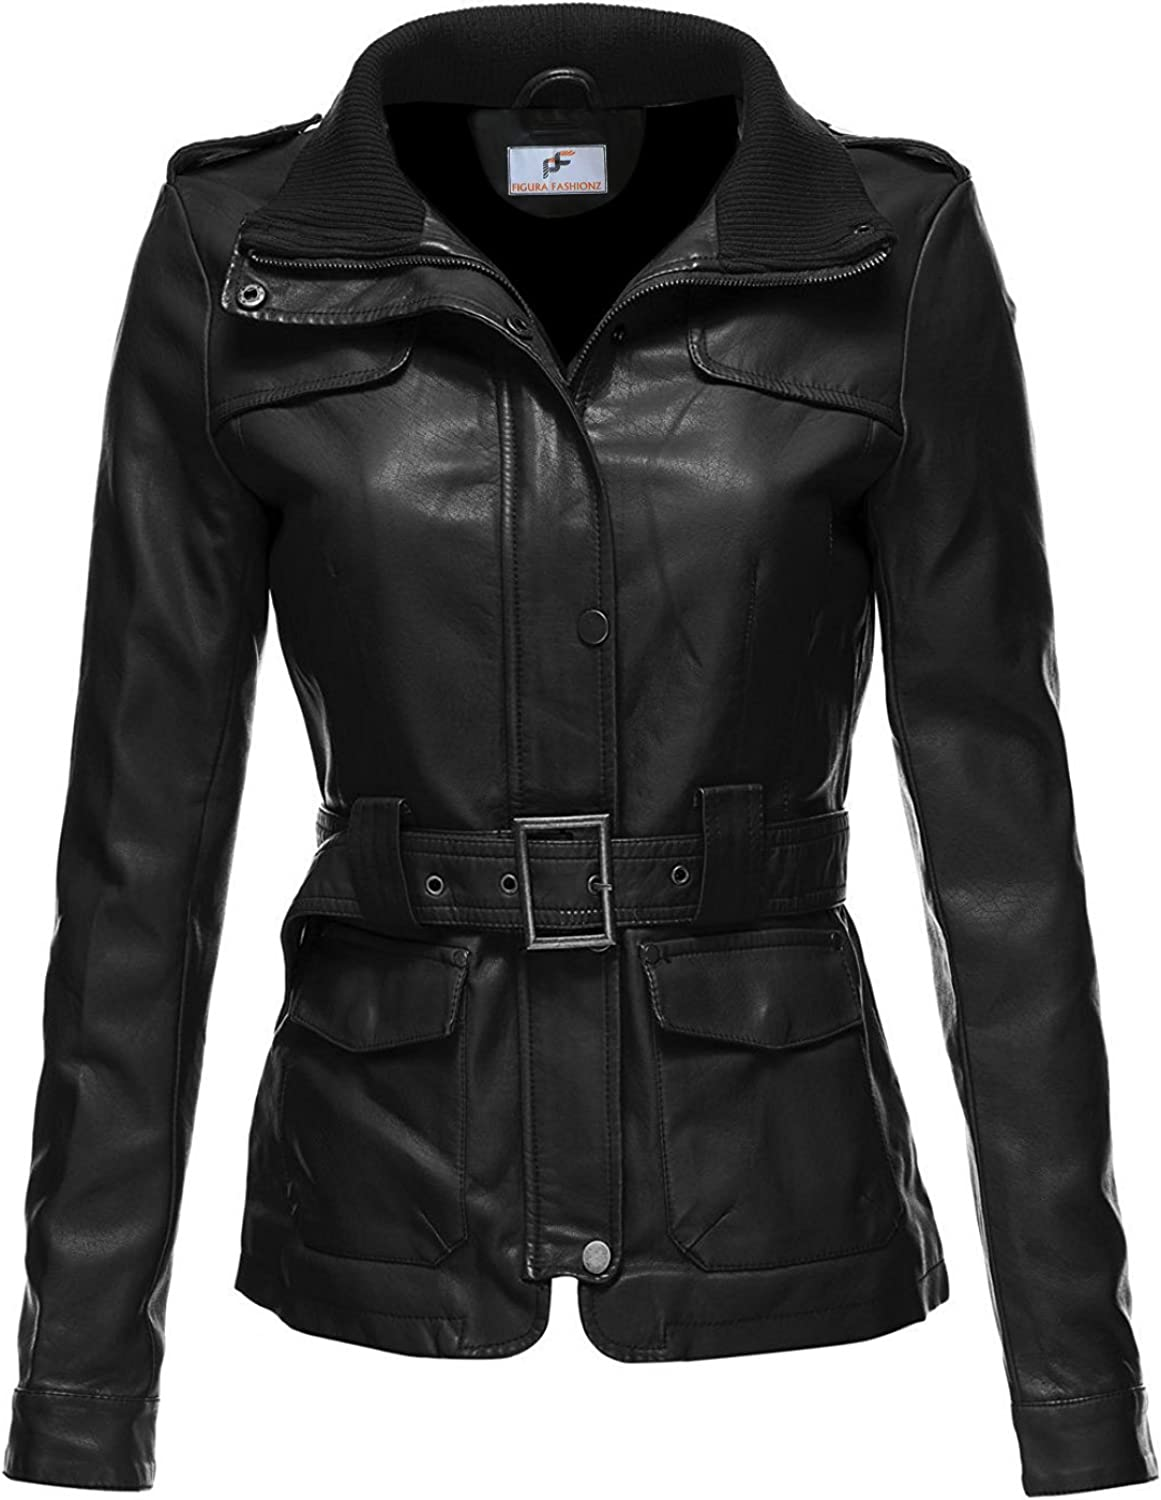 Figura Fashionz Long Body Lambskin Leather Jacket for Women with Adjustable Waist Belt  Petite, Regulae, and Plus Size